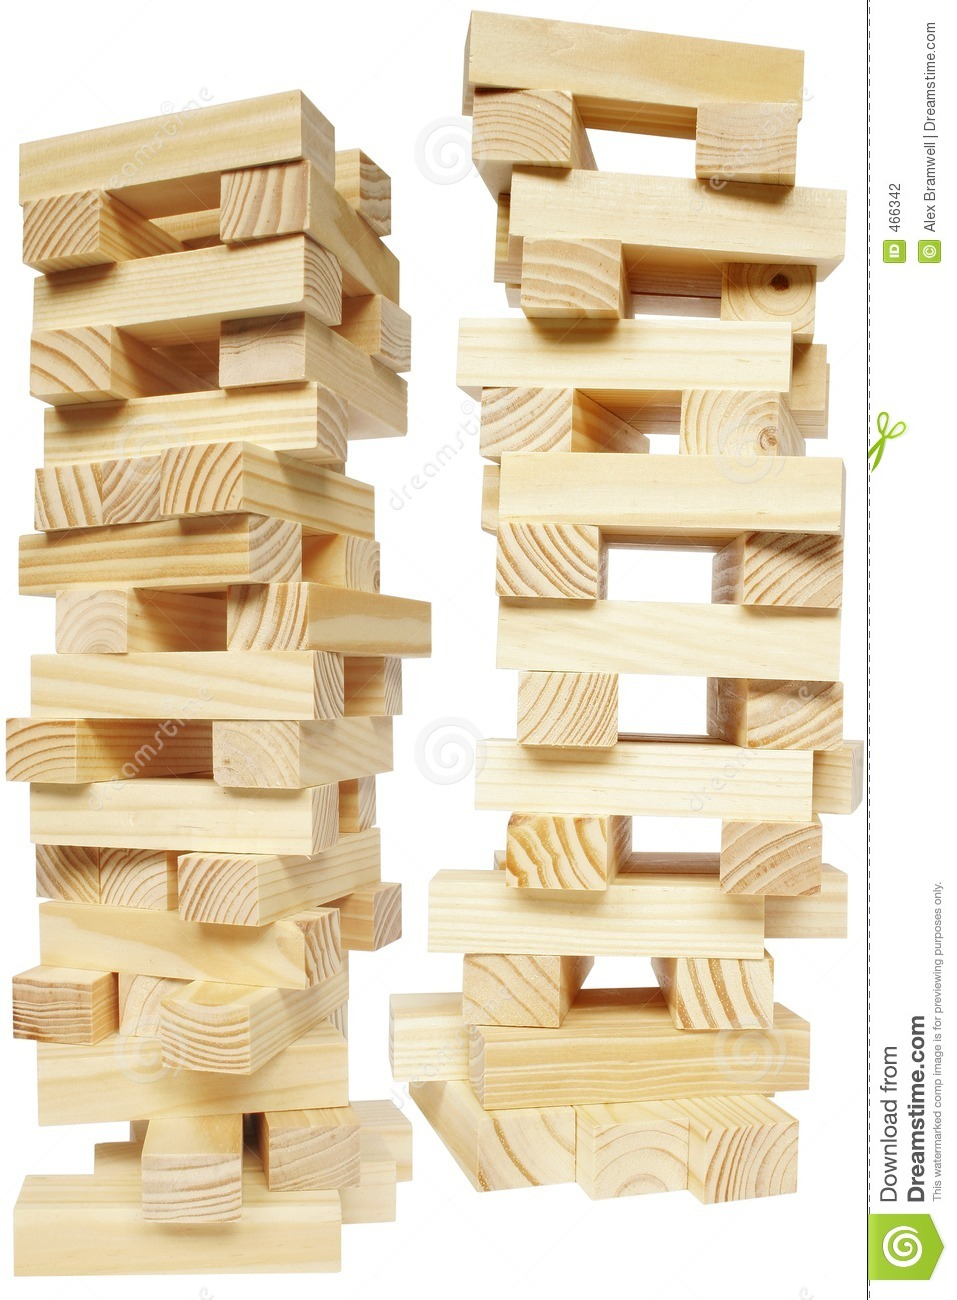 Wood Block Tower Stock Photography.